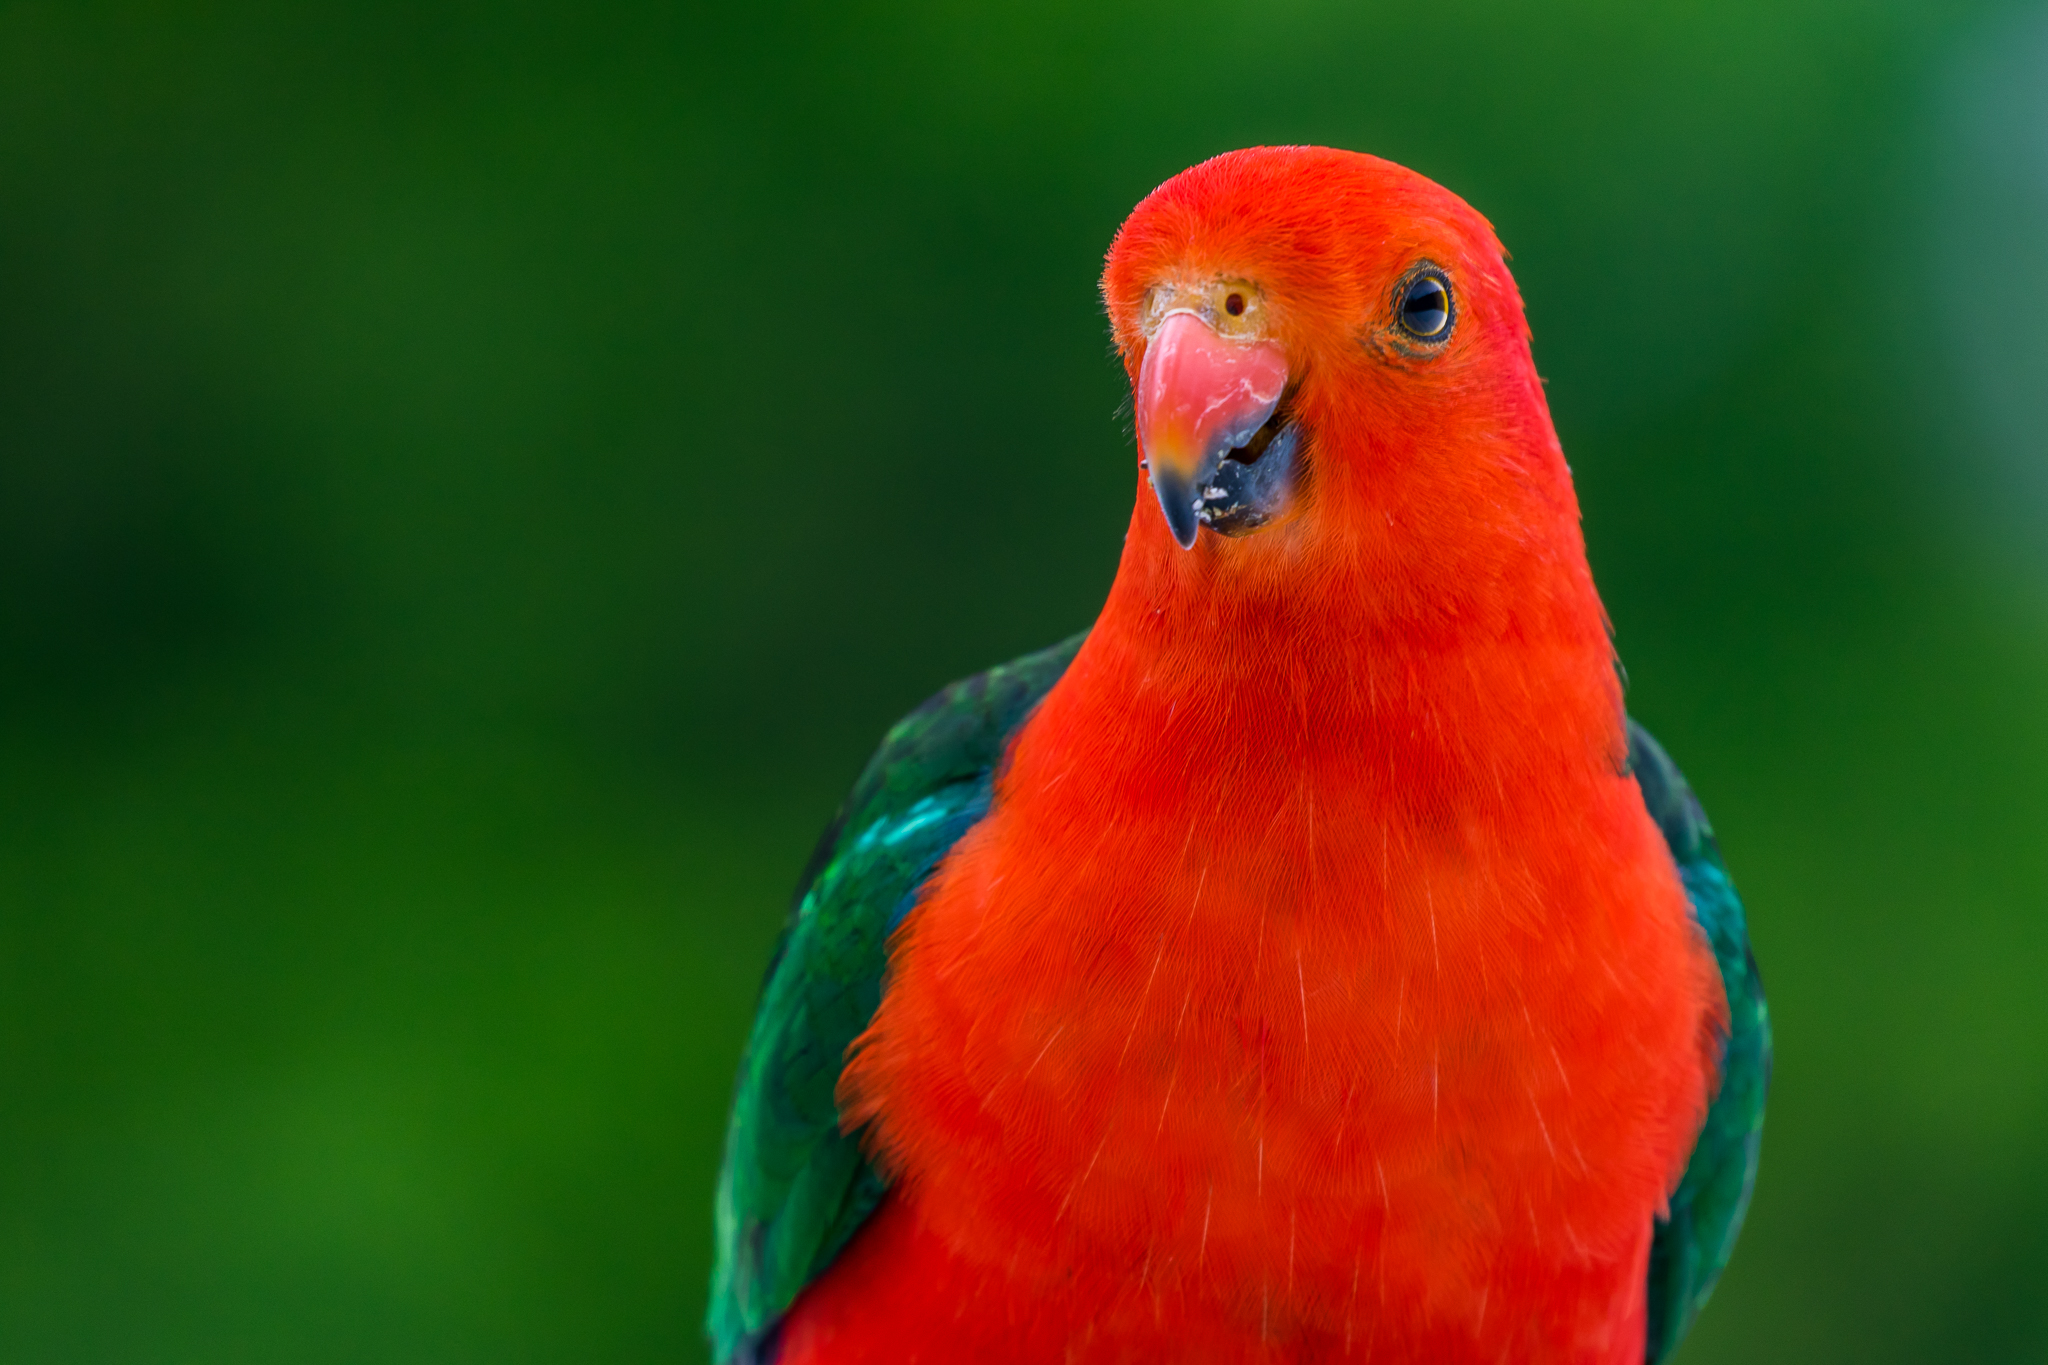 Australia's largest true parrot is the King-Parrot (44 cm), found in the rainforests of Australia's east coast. Australian King-Parrots feed in the trees on seeds and fruit. The male is recognised by its scarlet head while the female's head is green.